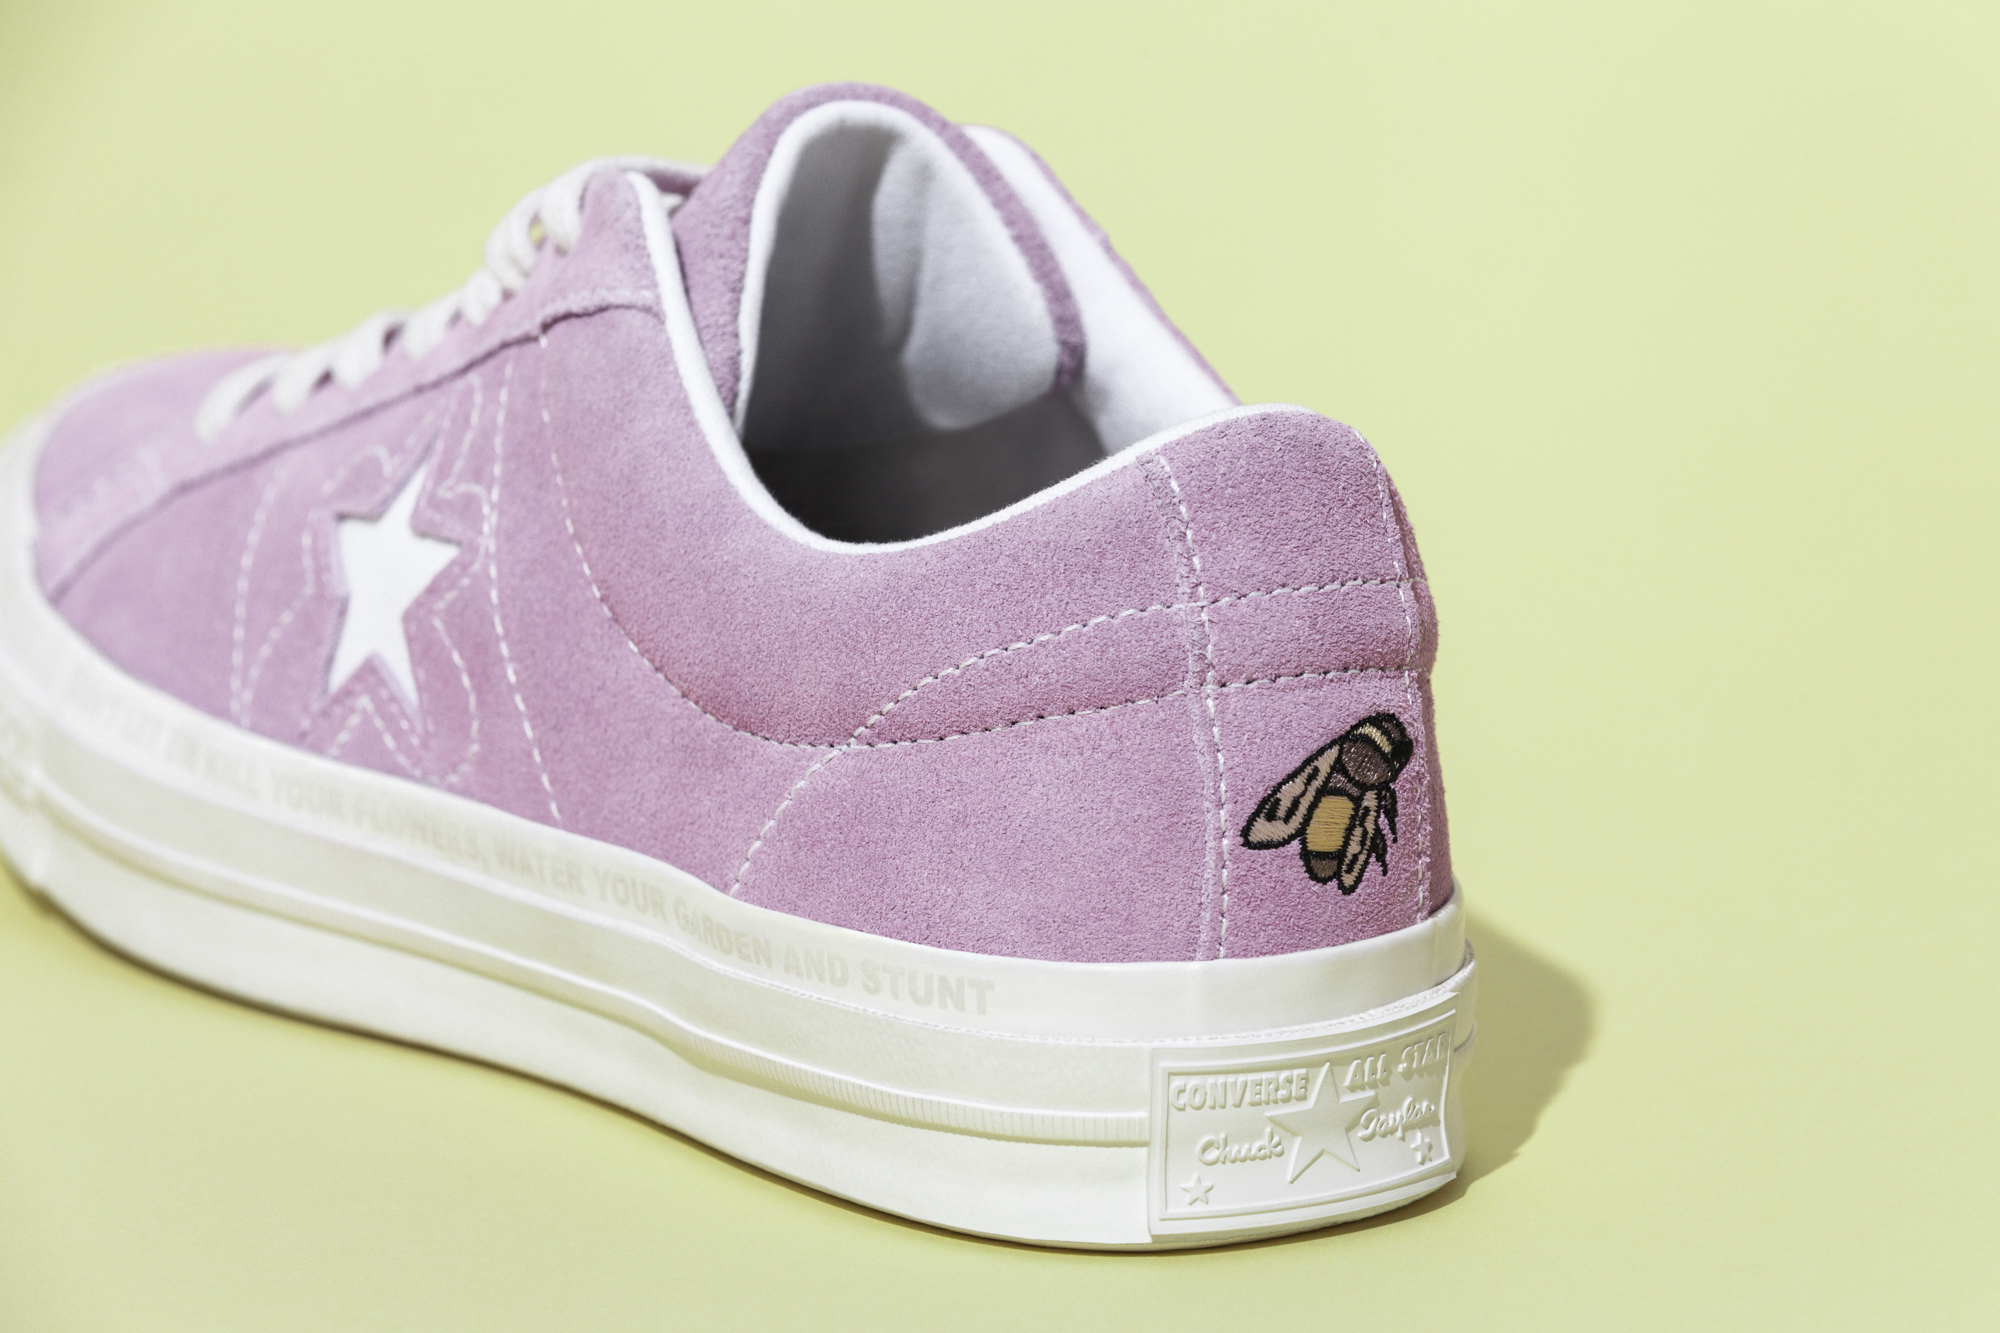 Converse All Star Golf Shoes